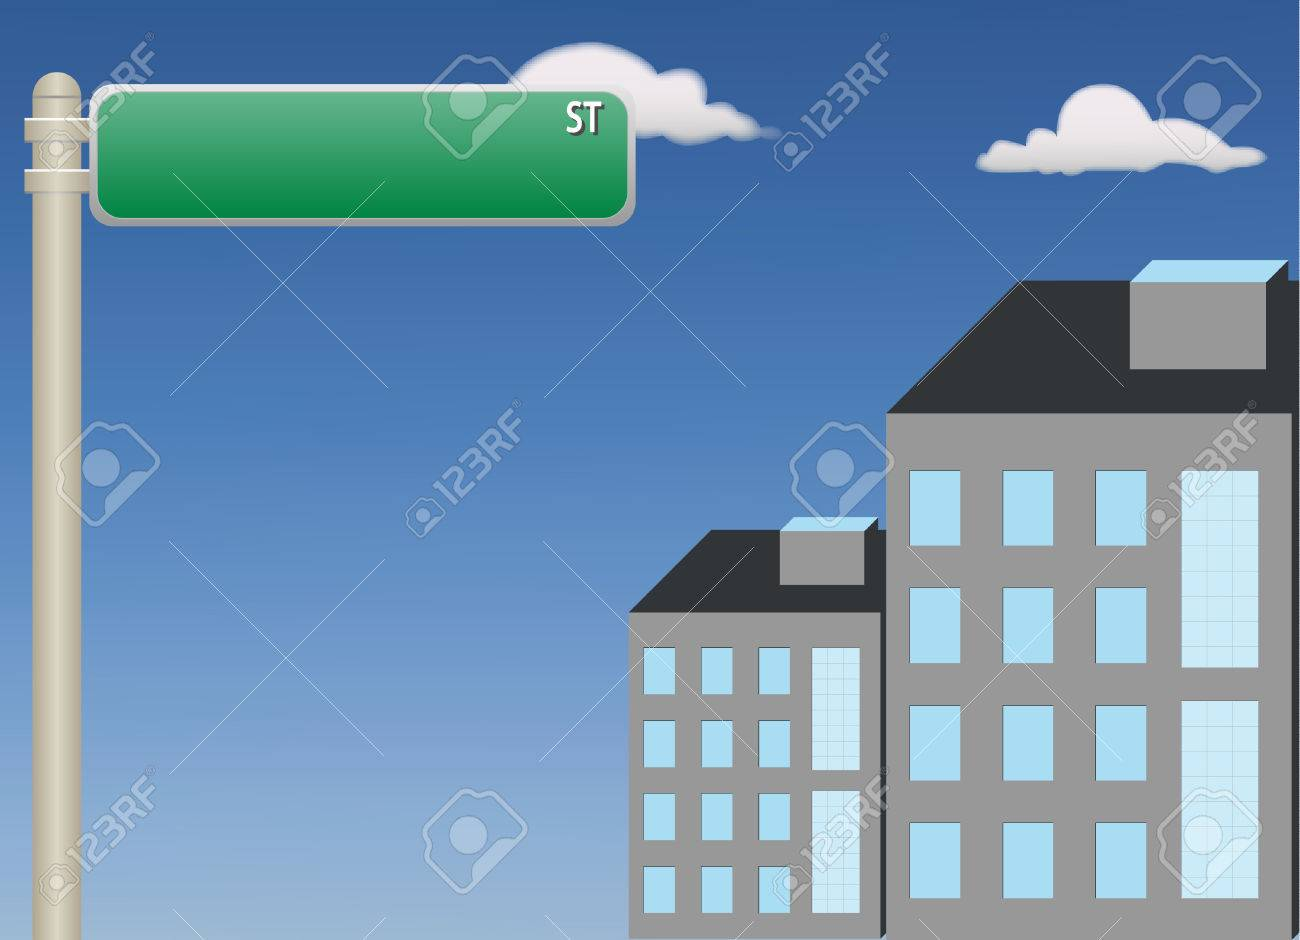 A vector illustration showing a  street sign attached to a pole on blue sky Stock Vector - 8302372